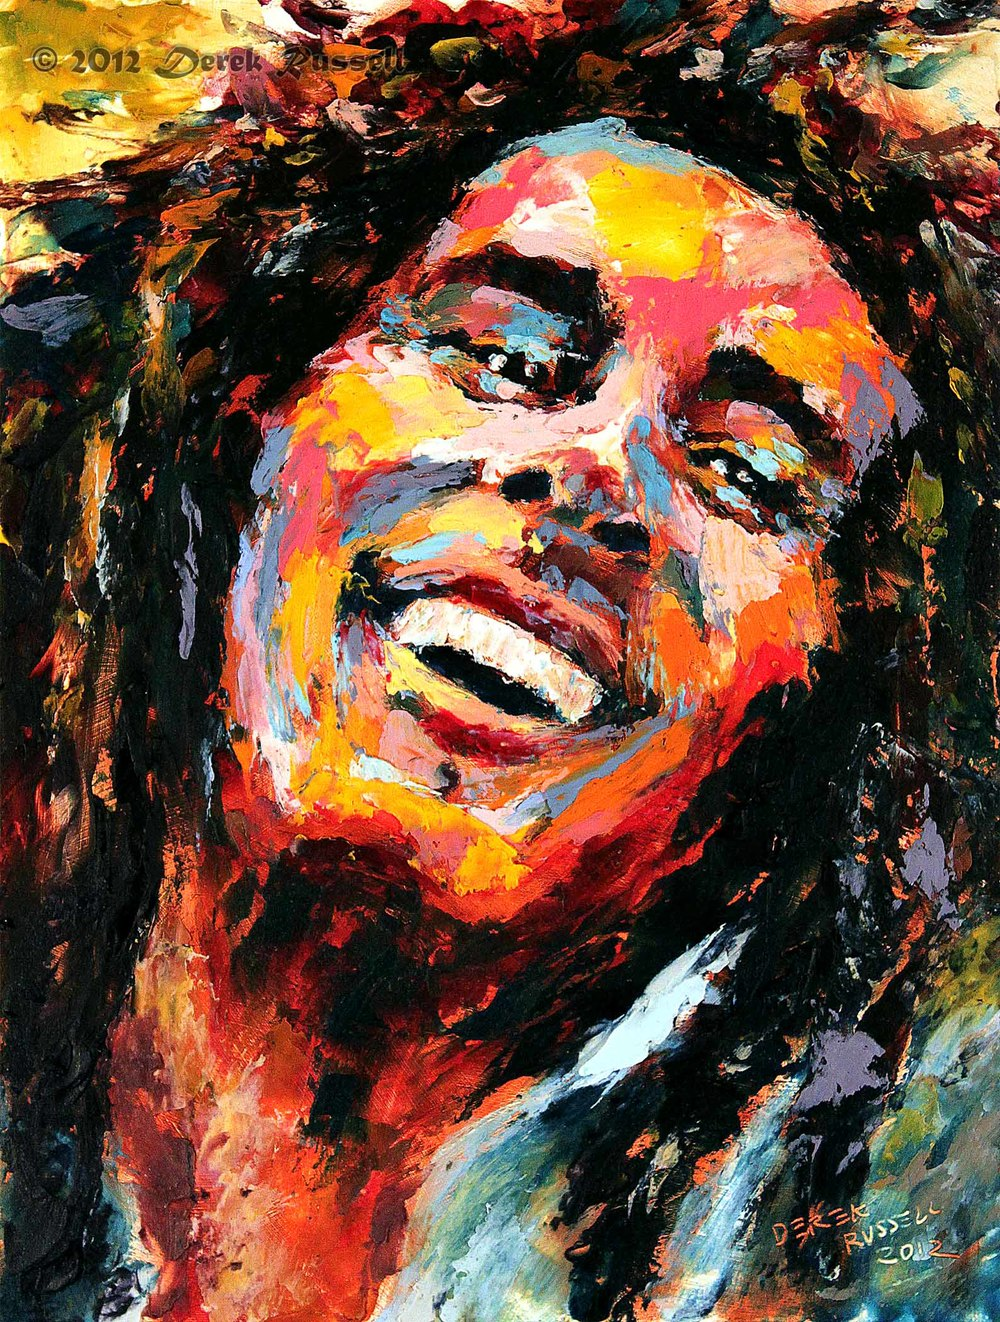 Bob Marley Original Portrait Pop Art Painting by Derek Russell